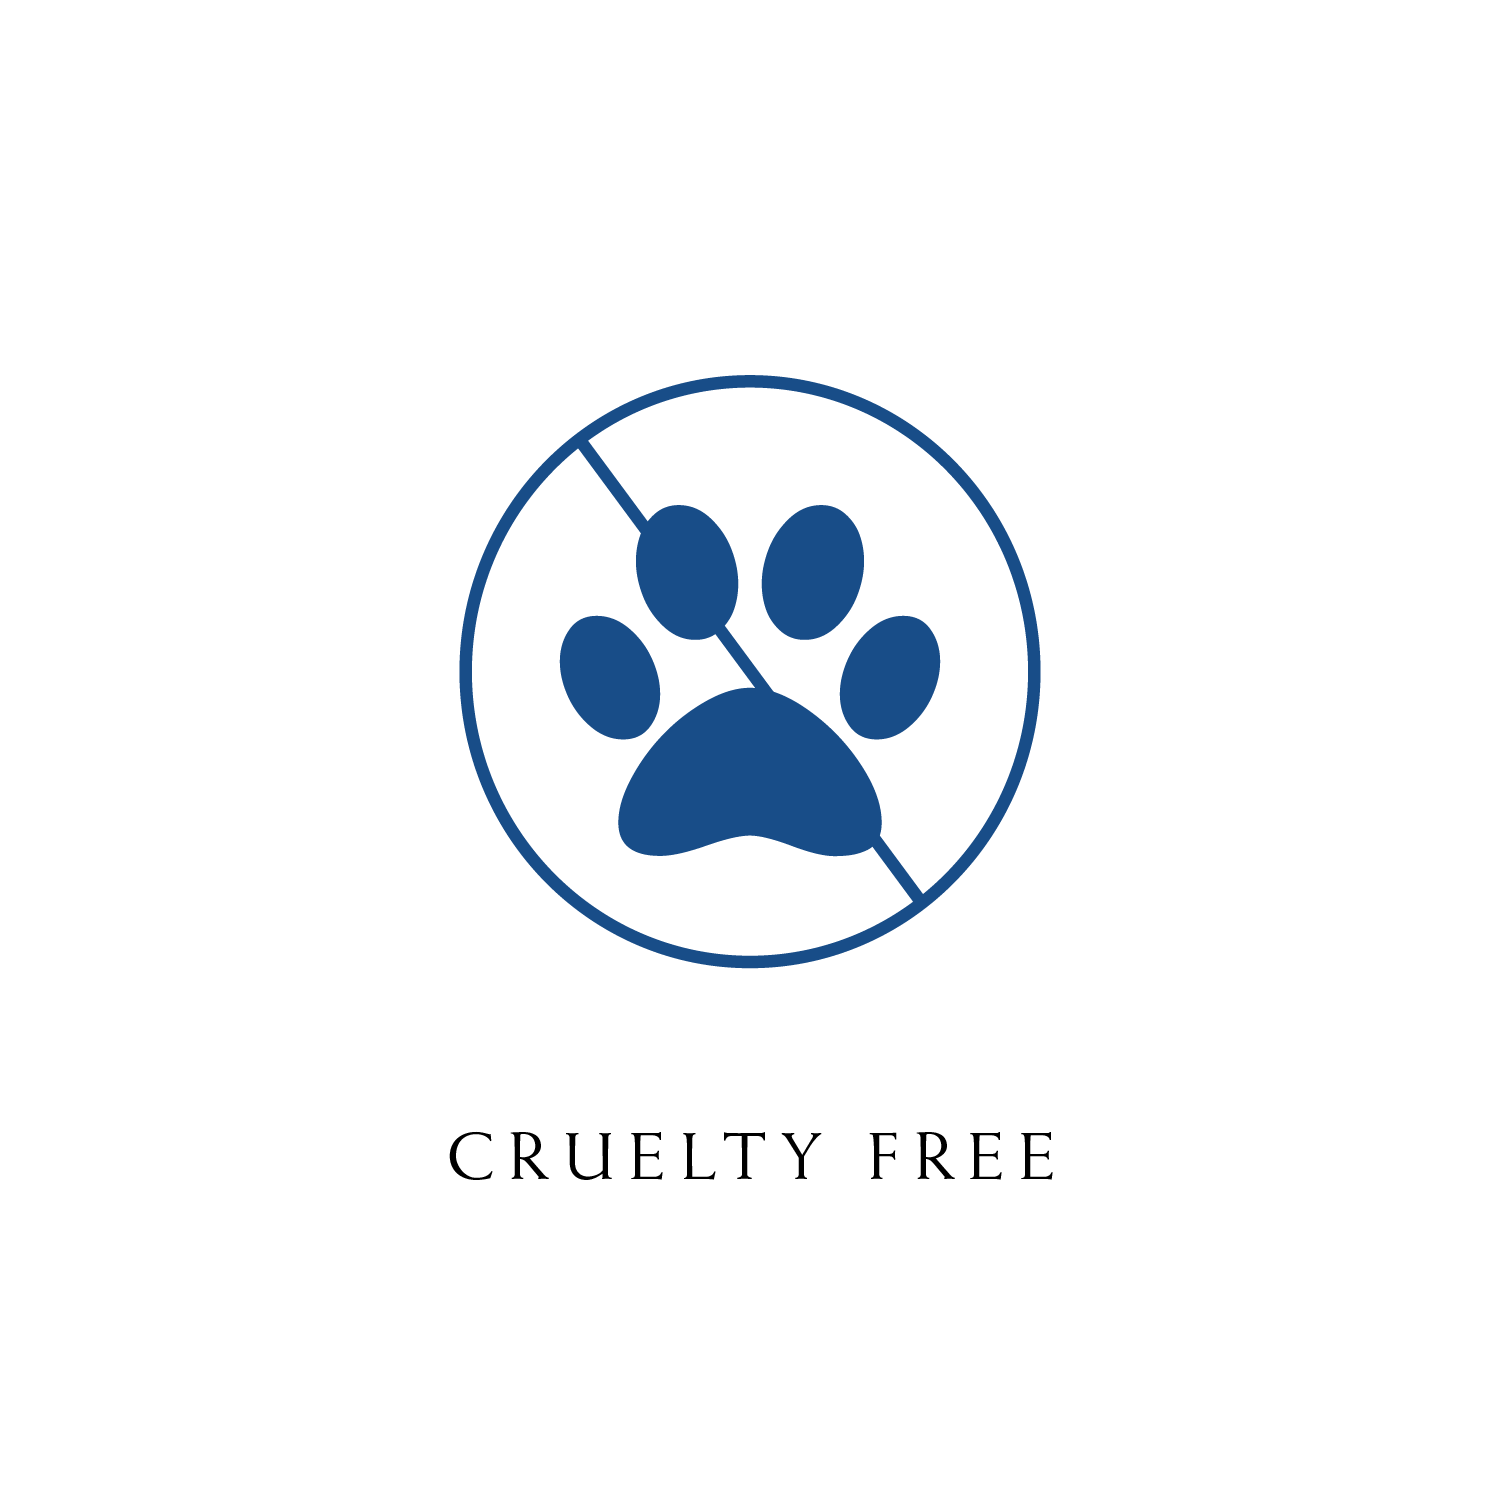 KPO-icons-KPO-cruelty-free.png